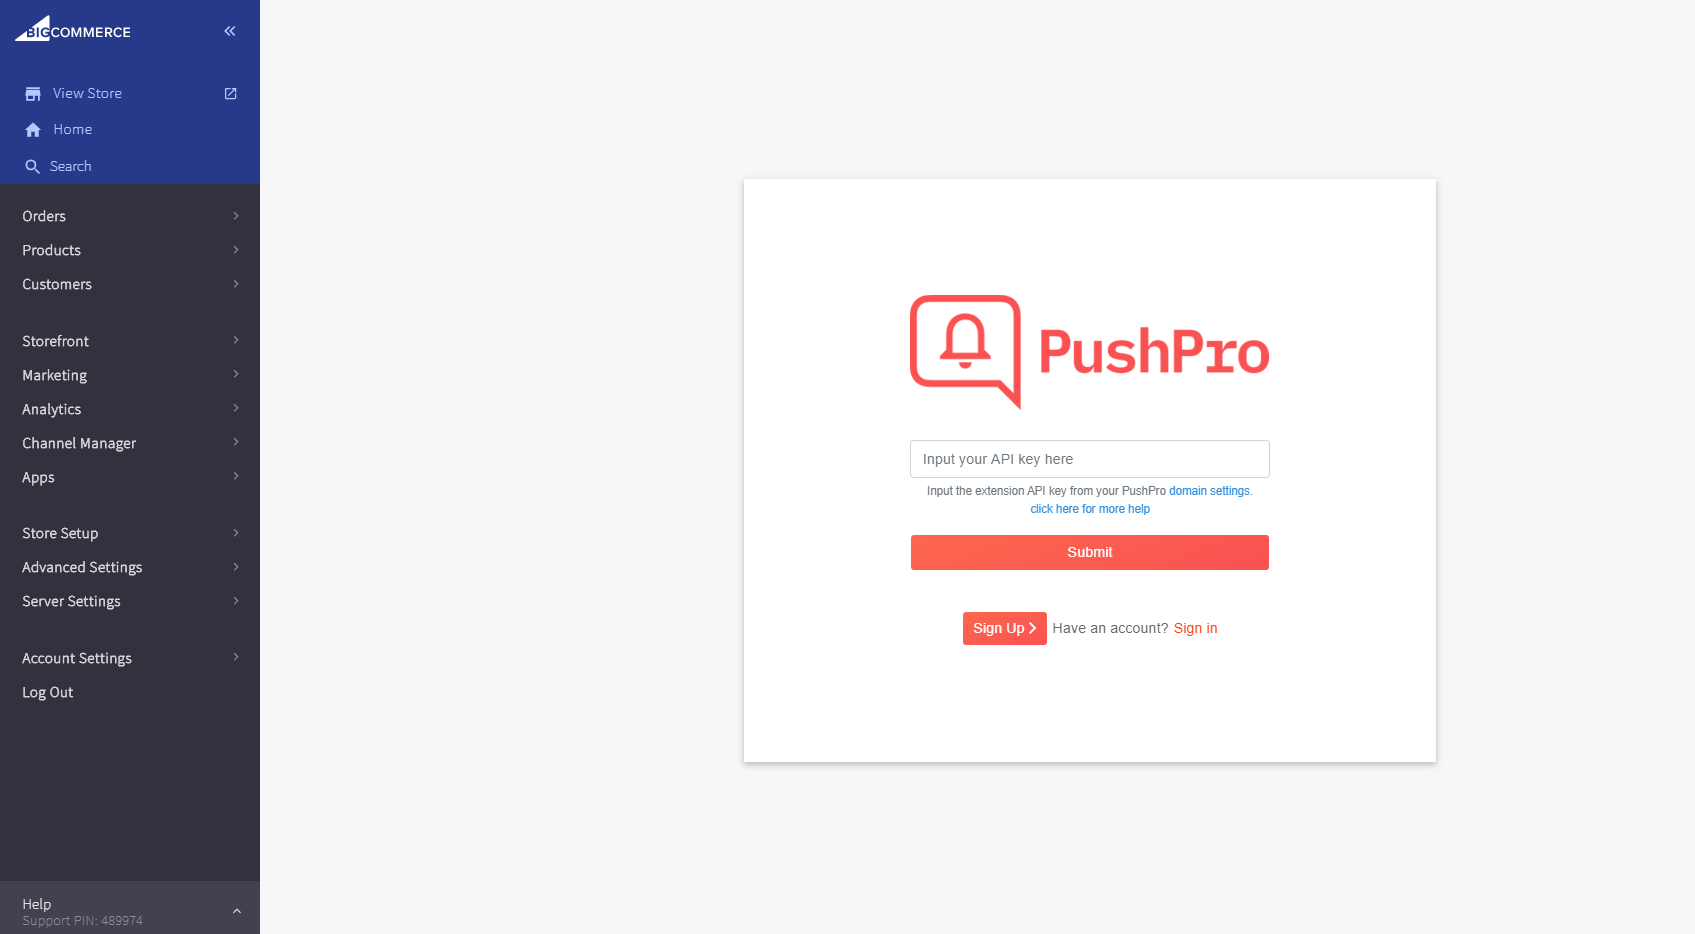 Screenshot showing the installation of the PushPro plugin in the BigCommerce dashboard